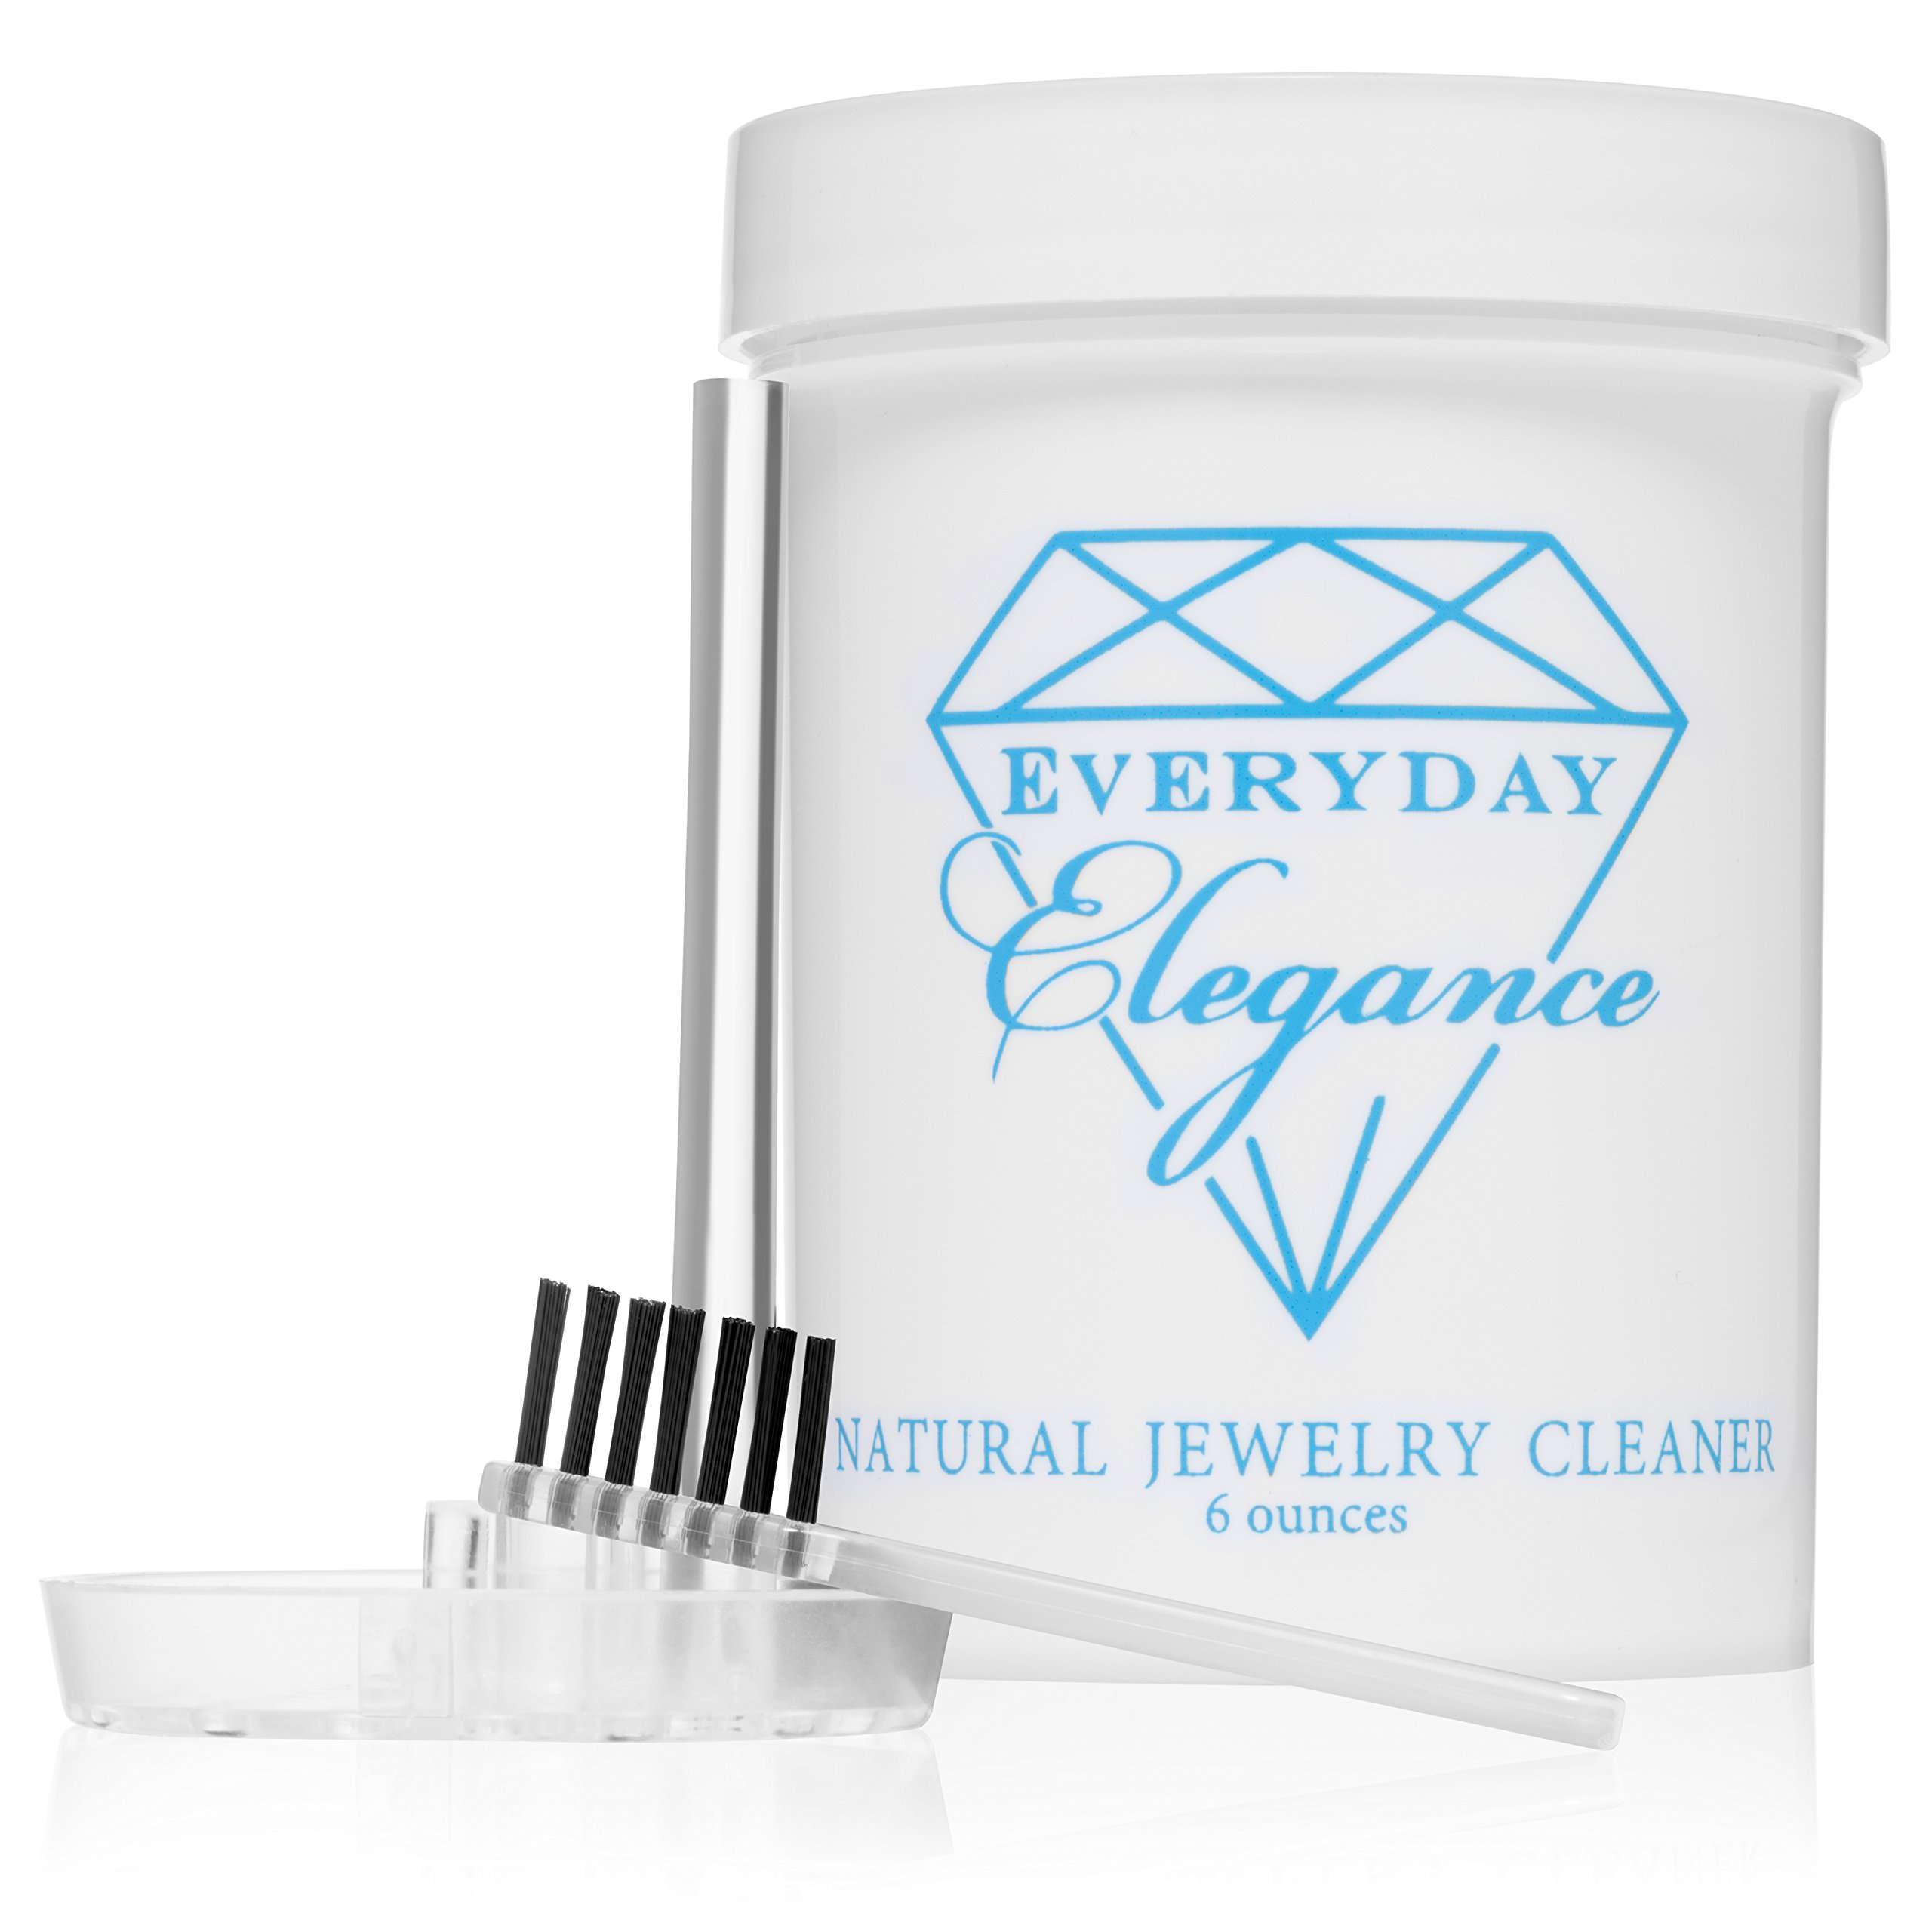 Everyday Elegance |100% All Natural Jewelry Cleaner Solution | Non-Toxic Naturally Derived Cleaning Gold, Silver & Platinum Cleaning | 6 Ounce Jar